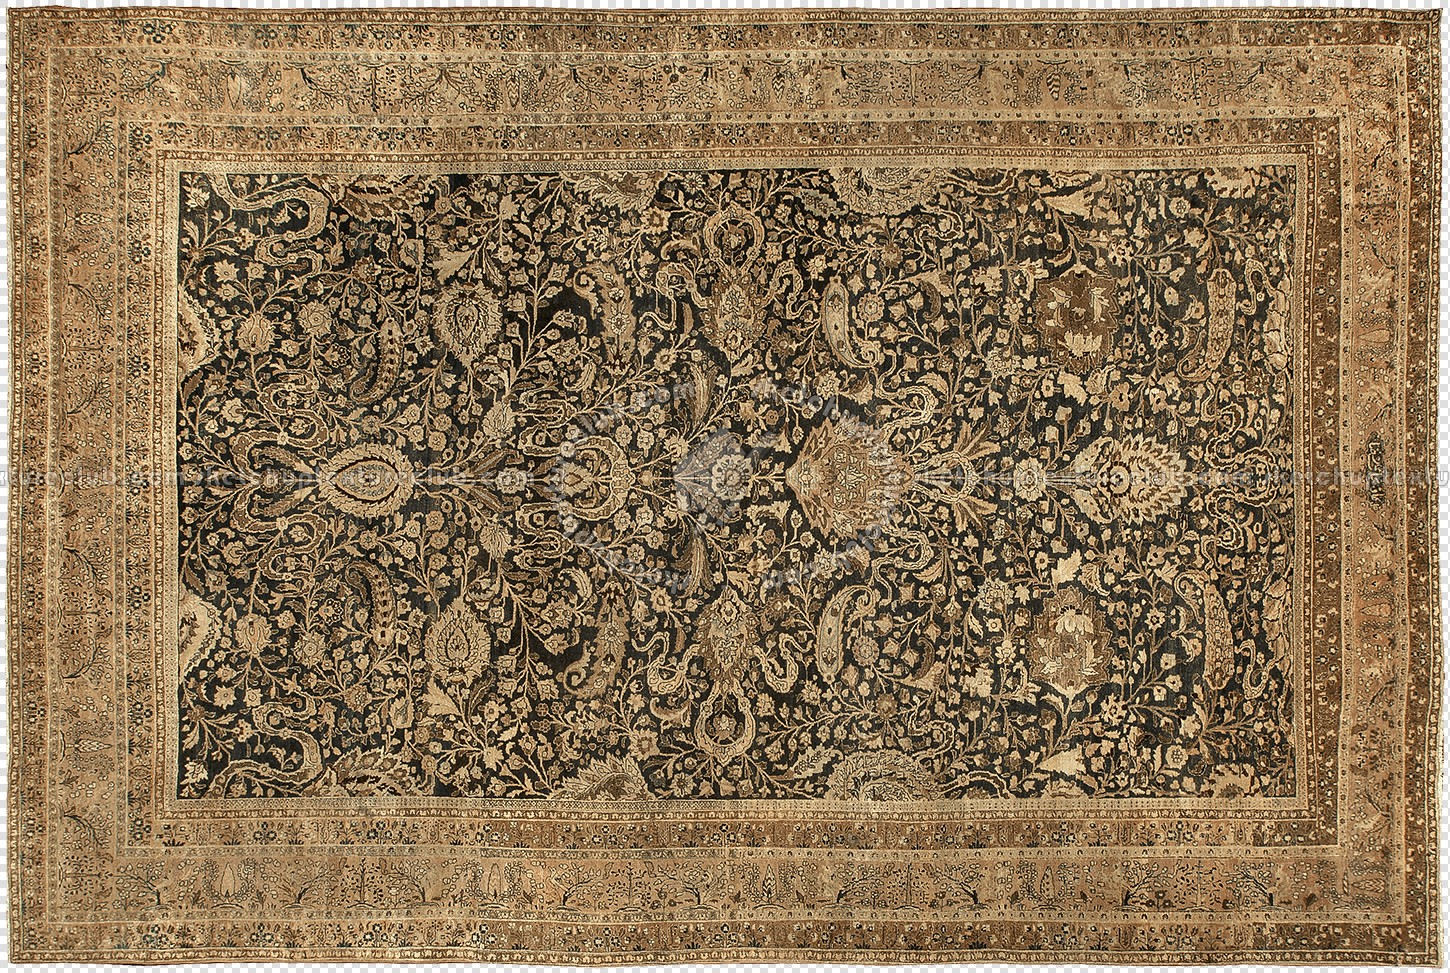 Old cut out persian rug texture 20168